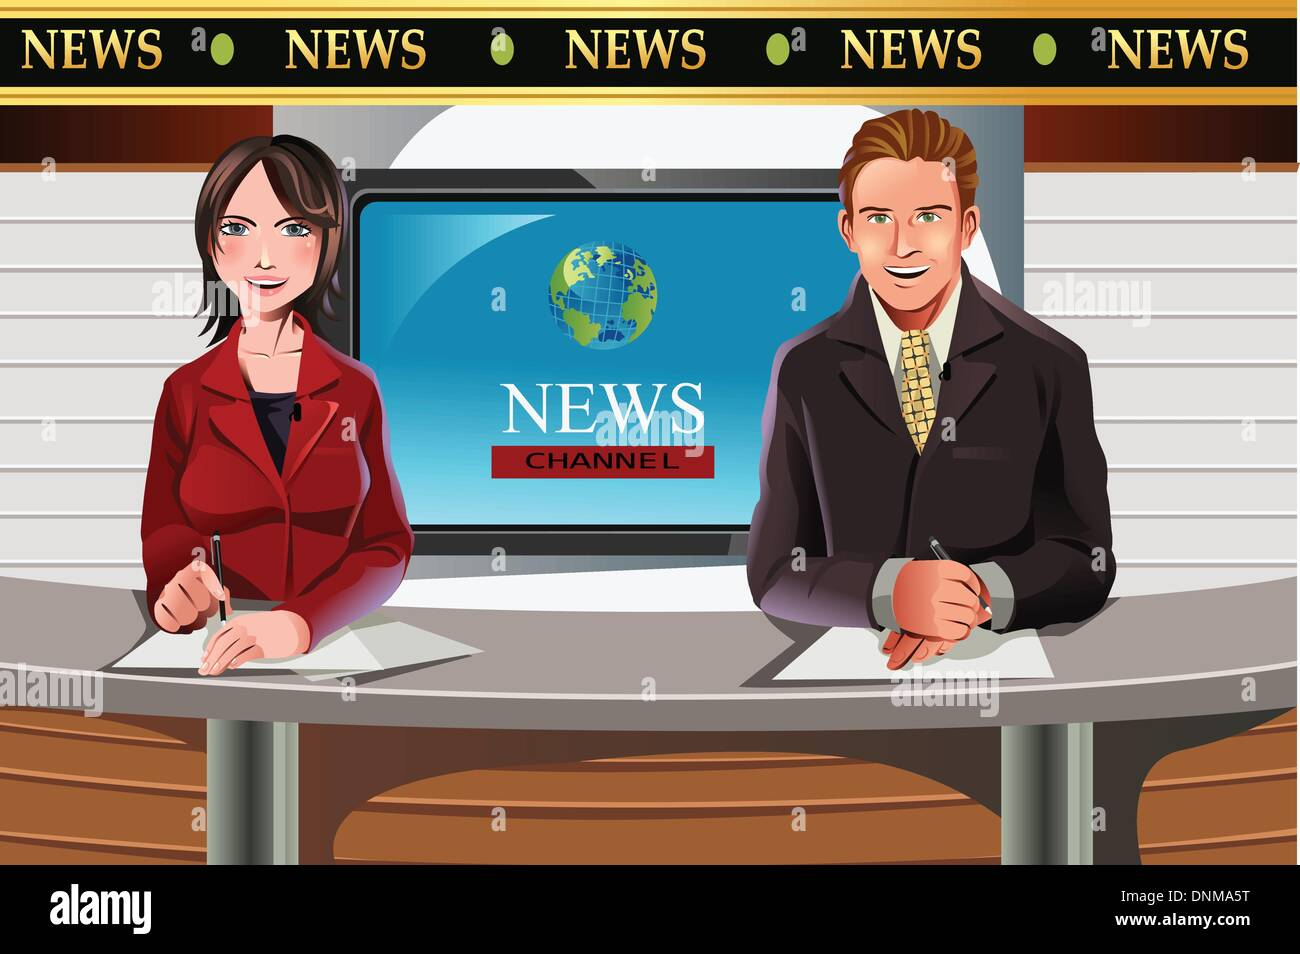 A vector illustration of TV news anchors - Stock Image